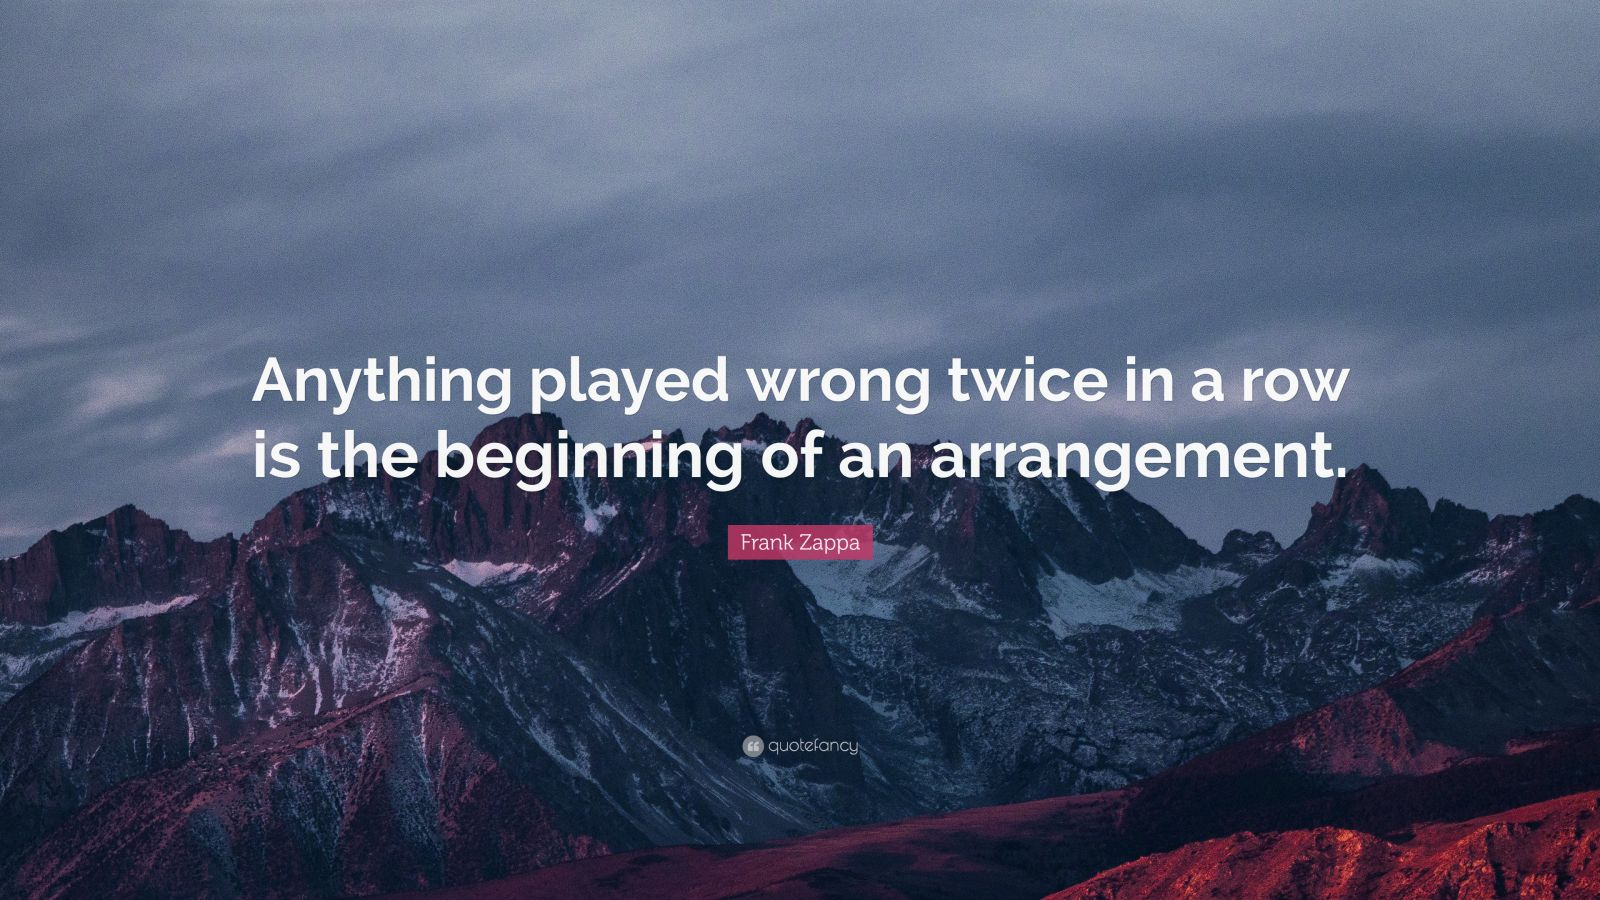 """Frank Zappa Quote: """"Anything played wrong twice in a row is the beginning of an arrangement."""""""